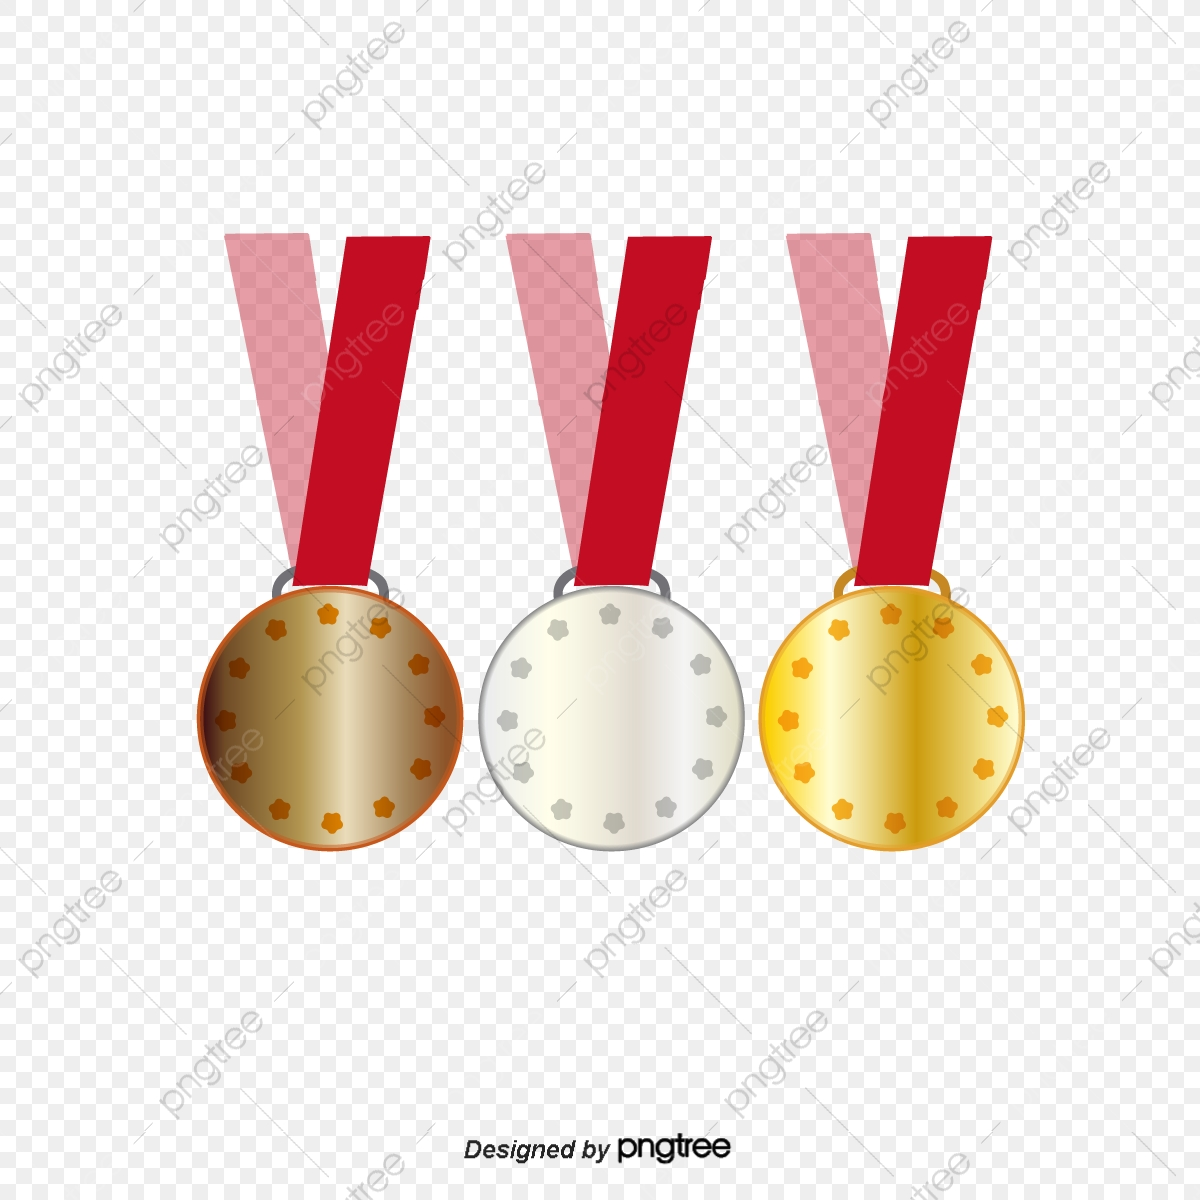 hight resolution of commercial use resource upgrade to premium plan and get license authorization upgradenow olympic medals